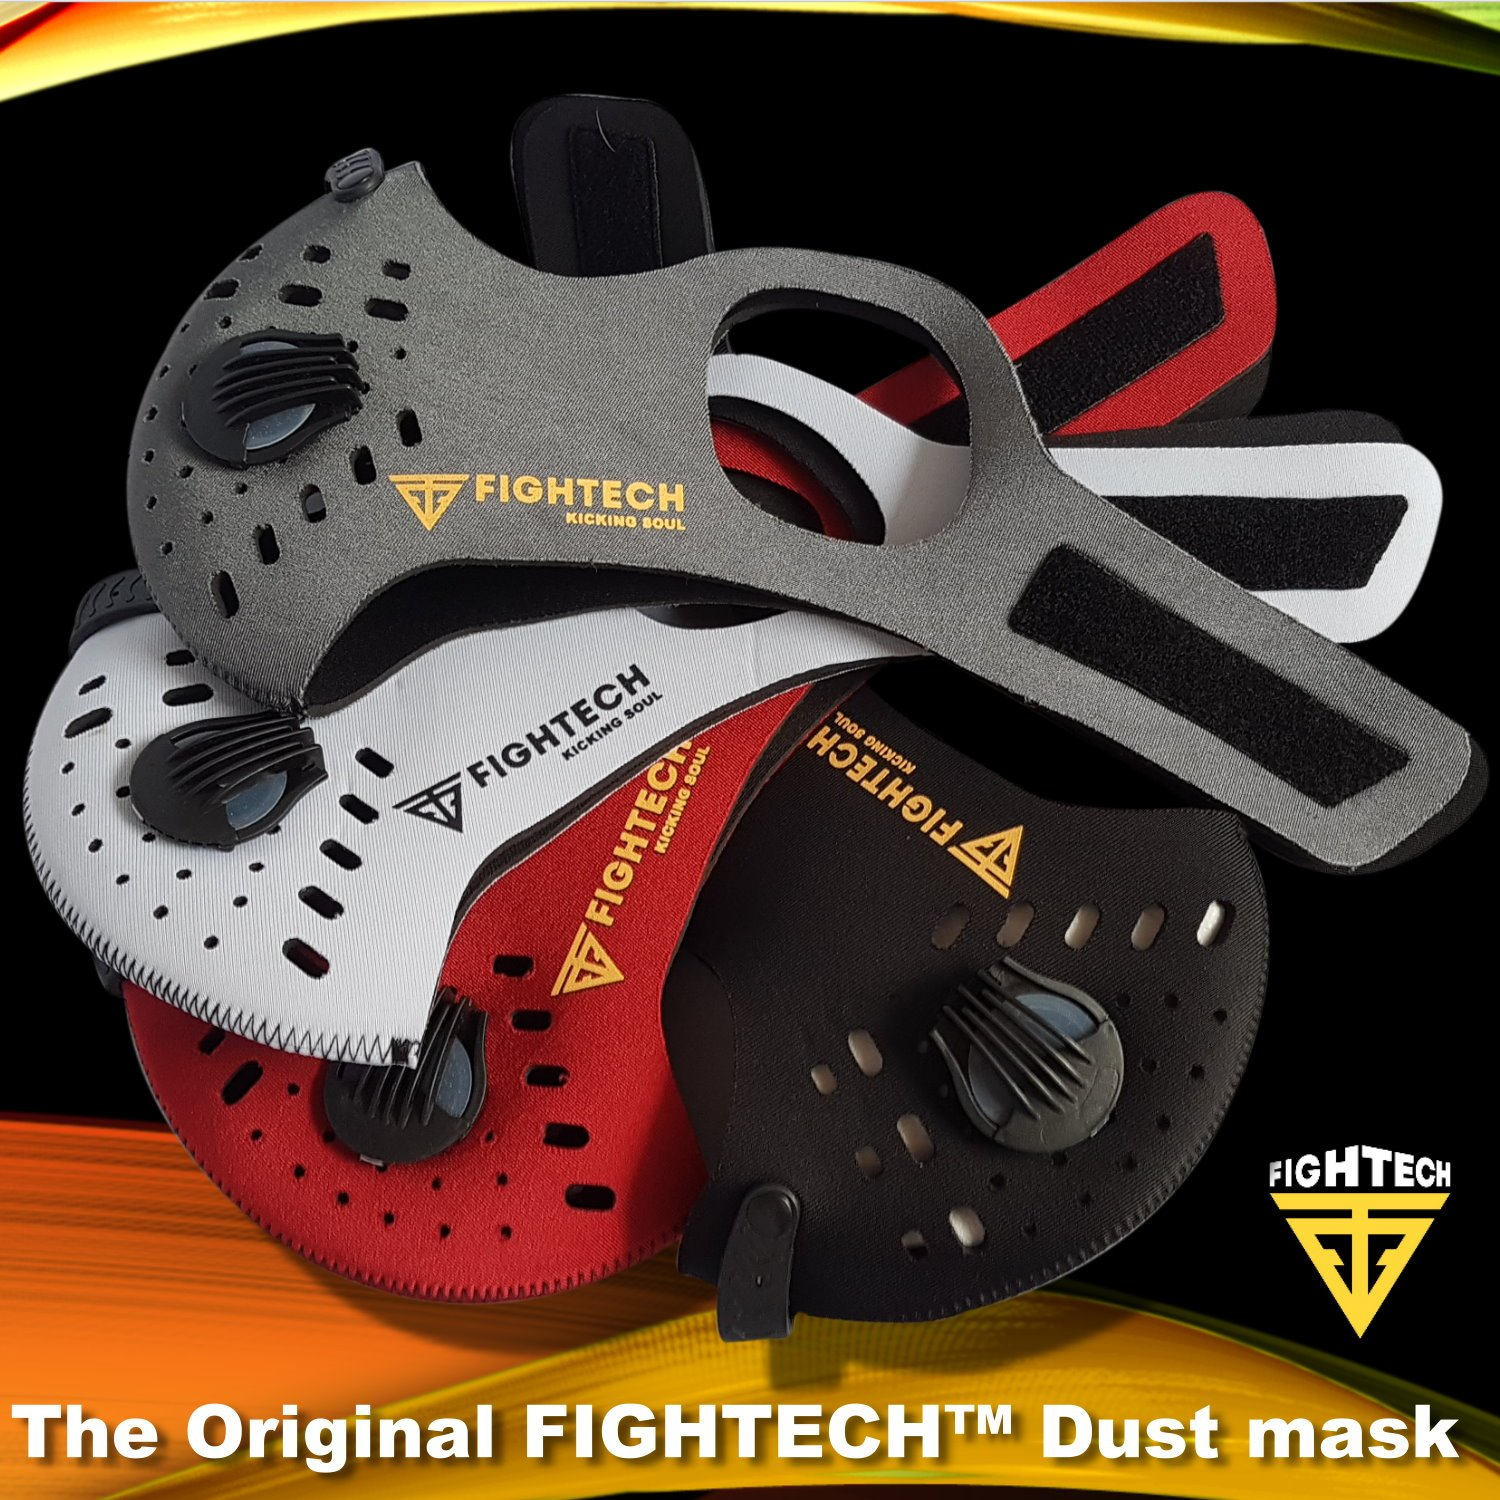 Anti-Pollution Dustproof/Dust Mask with 2 Valves and 4 Activated Carbon N99 Filters. Filtration of Exhaust Gas, Pollen Allergy and PM2.5. Cycling Face Mask for Outdoor Activities by FIGHTECH (BLK) by FIGHTECH (Image #6)